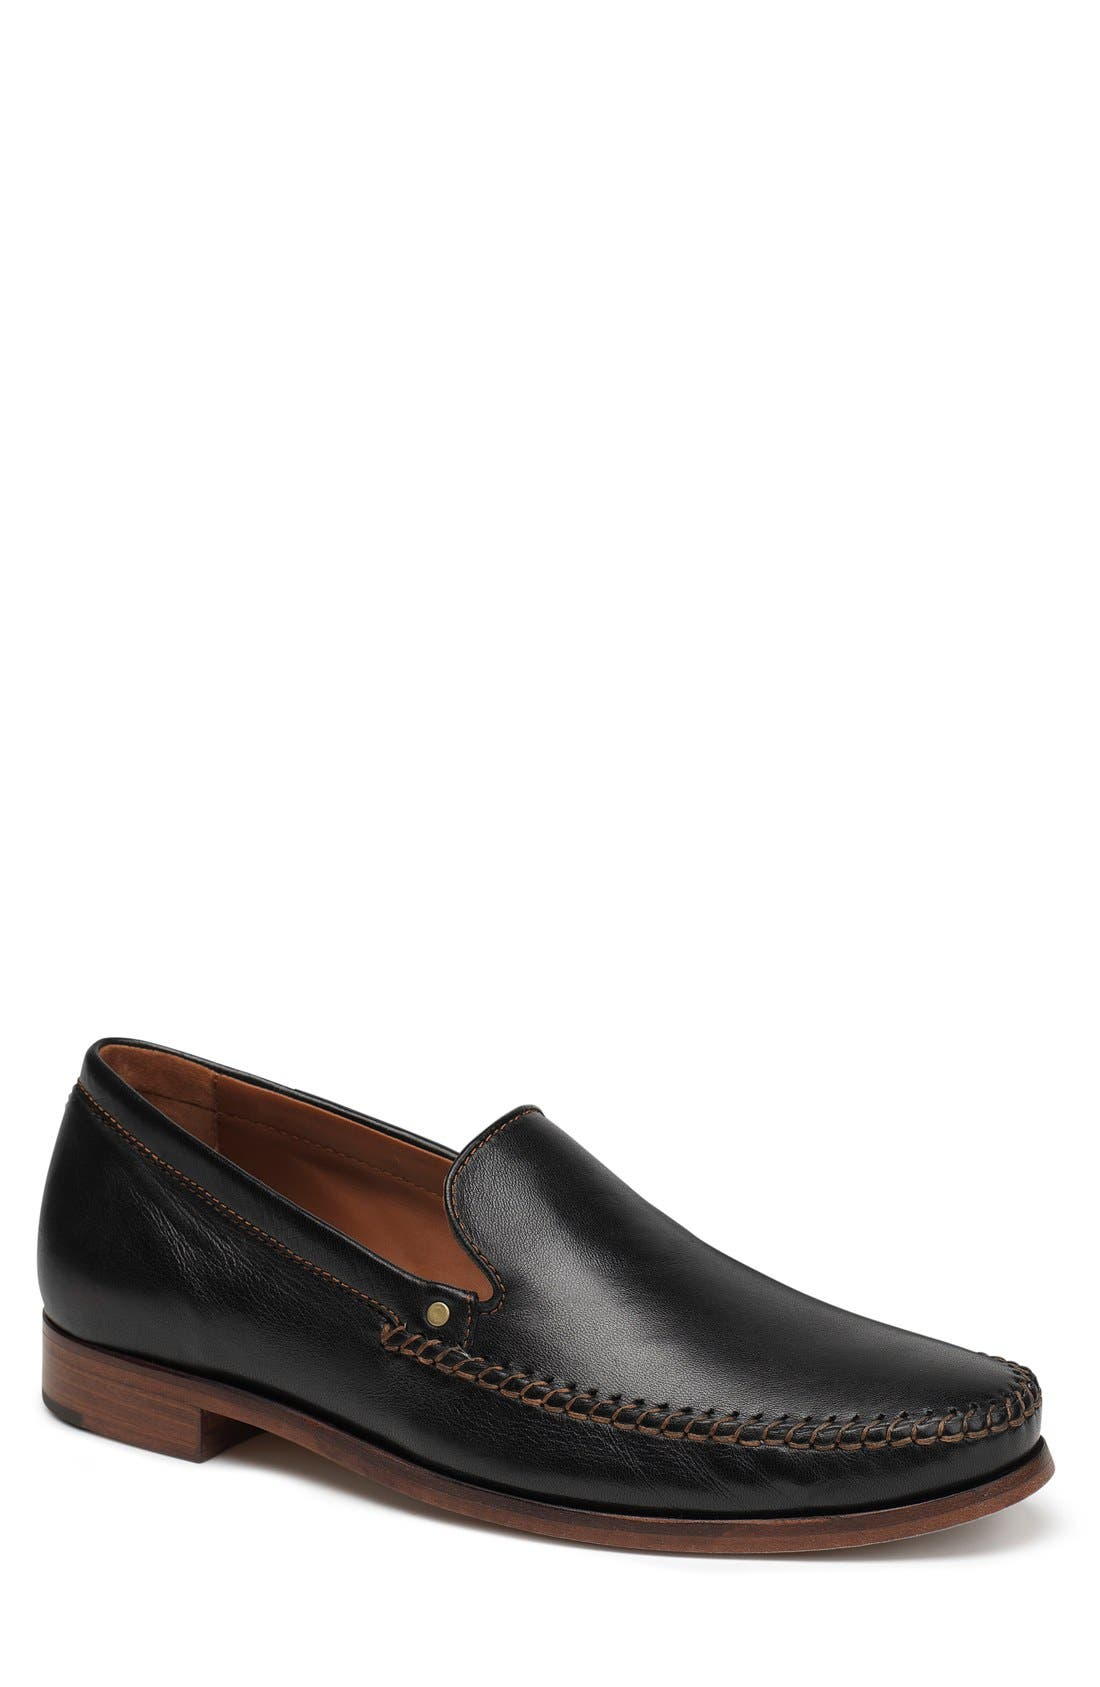 TRASK,                             'Seth' Loafer,                             Main thumbnail 1, color,                             BLACK SHEEPSKIN